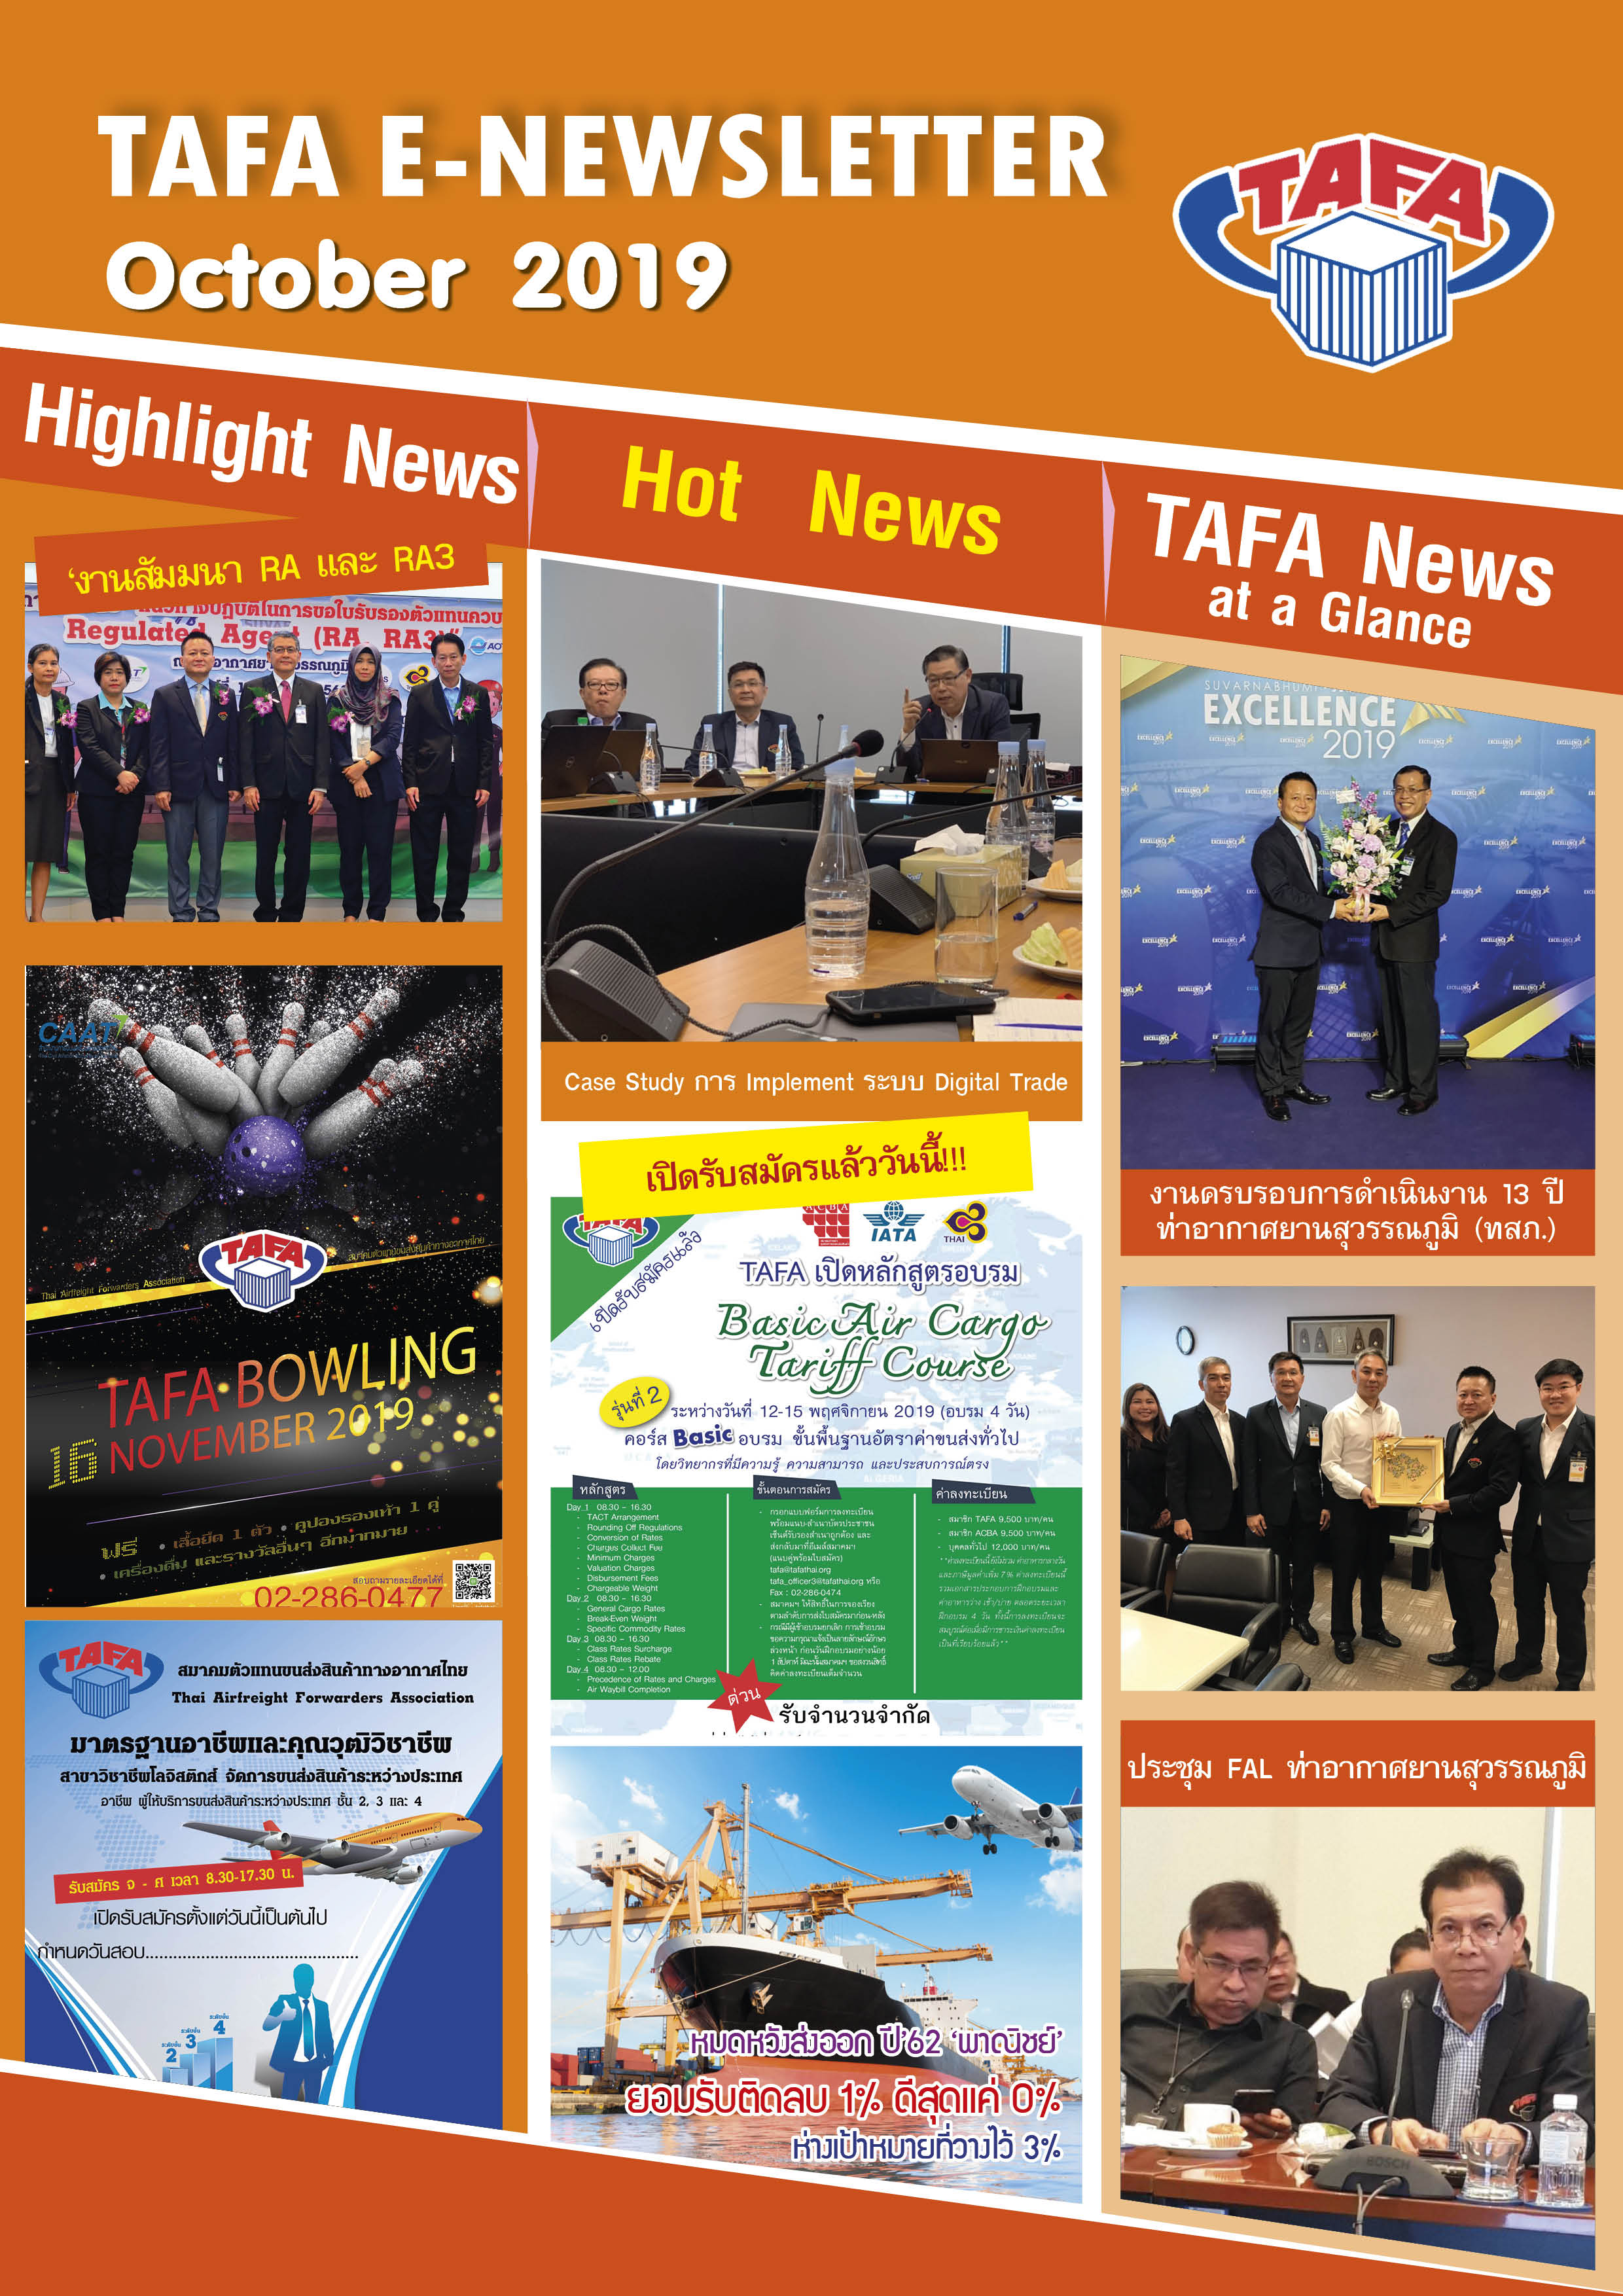 TAFA Newsletter, Issue 10 of October 2019